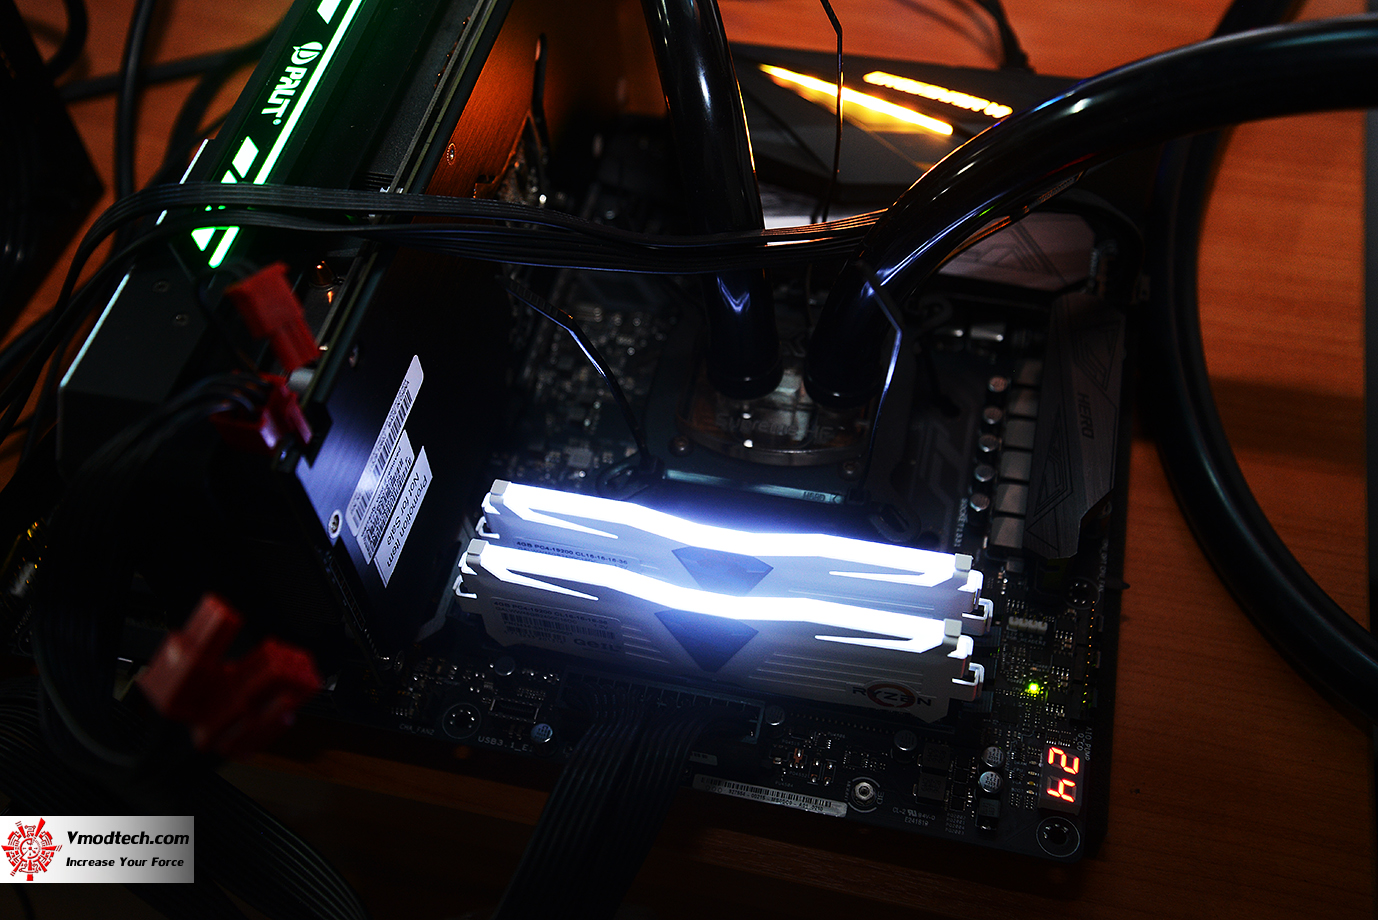 dsc 0386 GEIL DDR4 2400Mhz SUPER LUCE Series AMD Edition Review